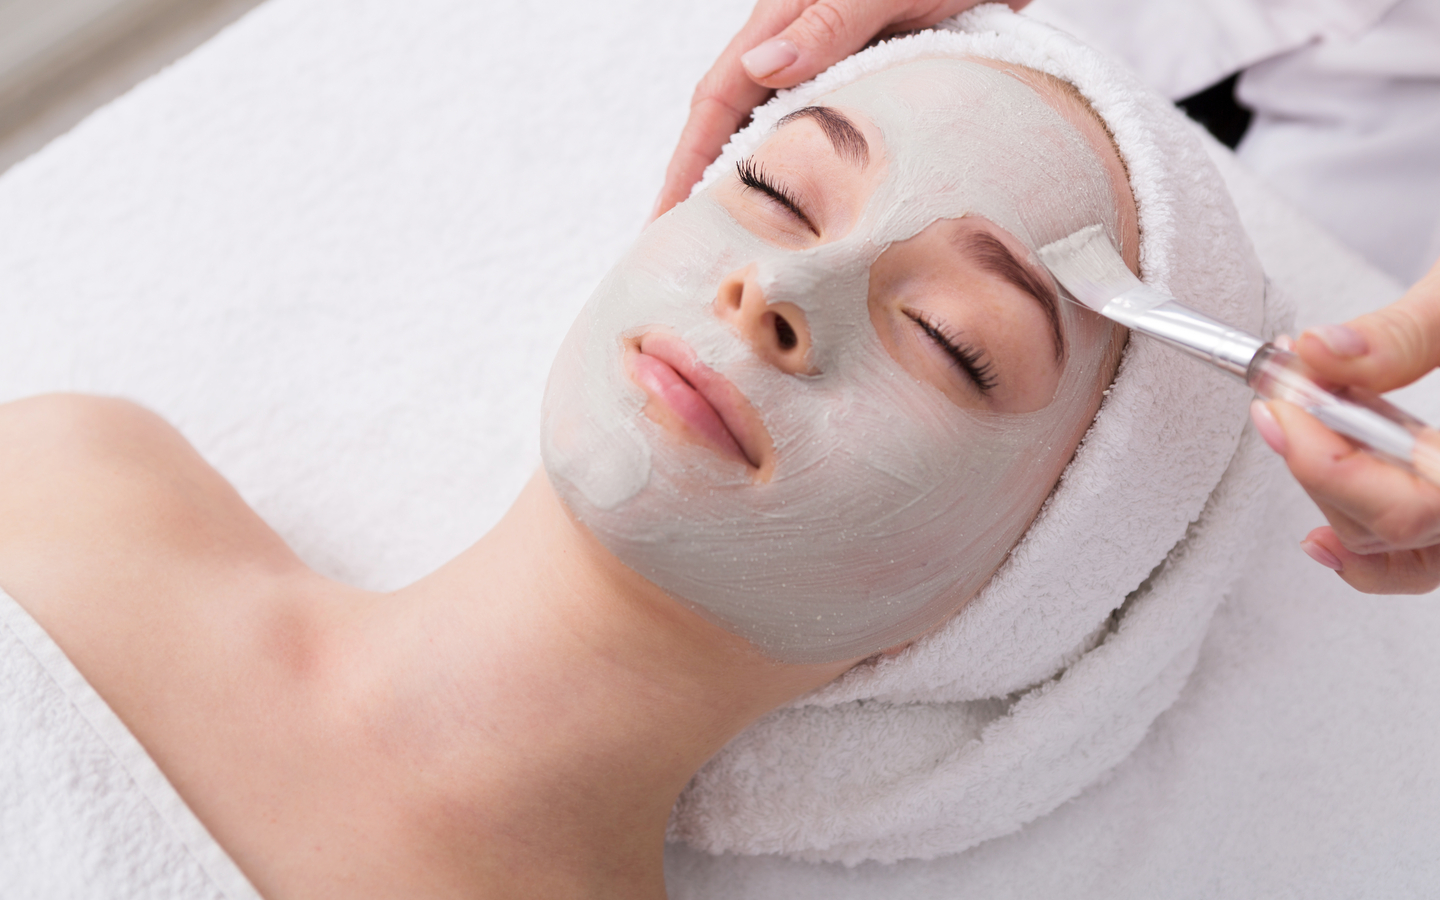 You can get a relaxing facial at Armada Spa and Wellness Centre